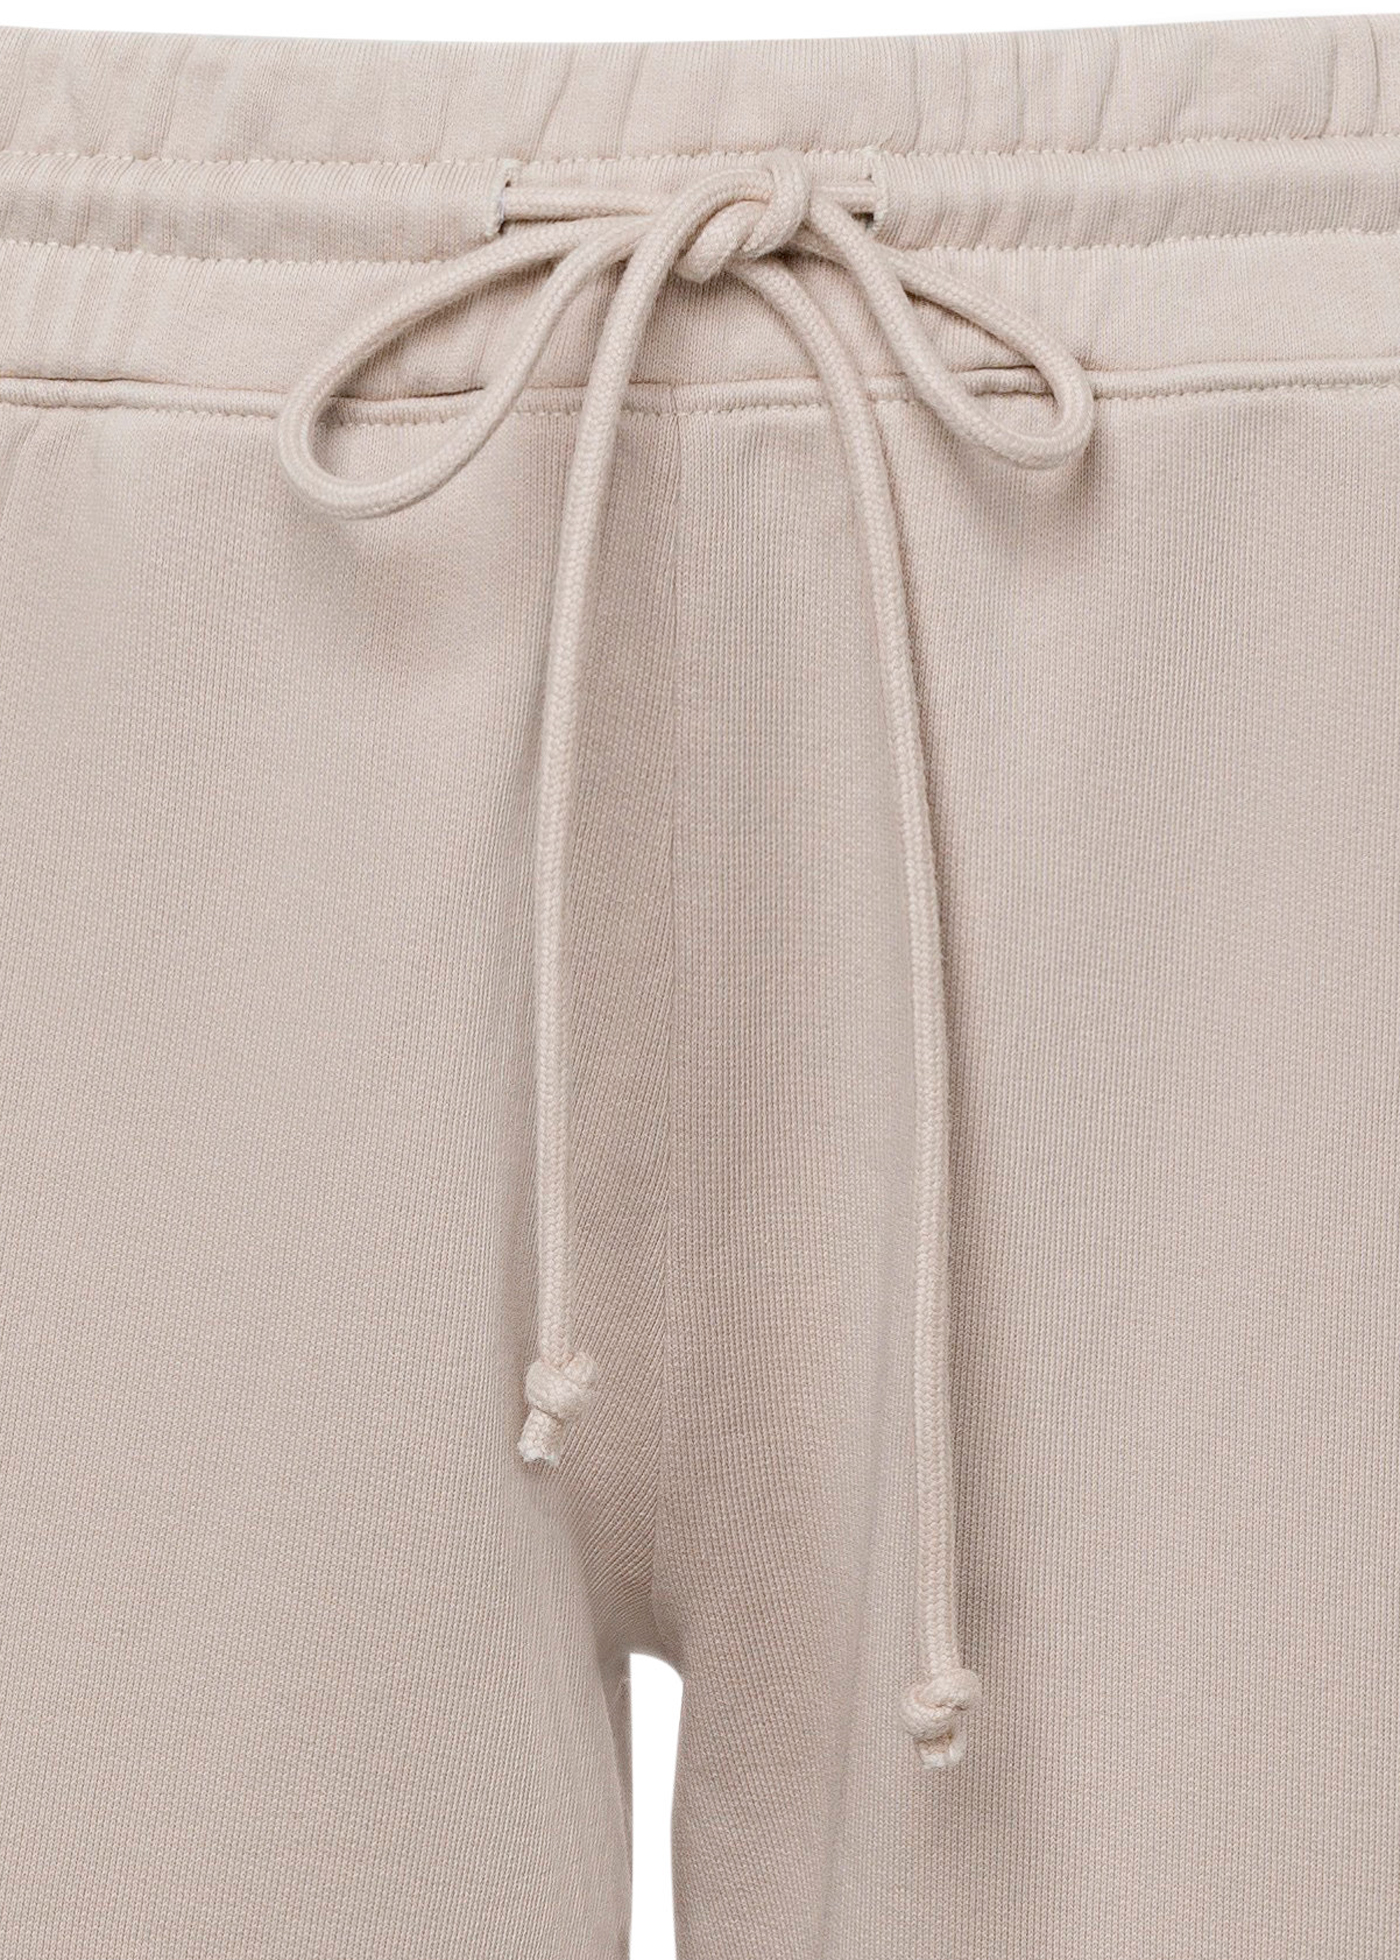 CROPPED PANT / CROPPED PANT image number 2